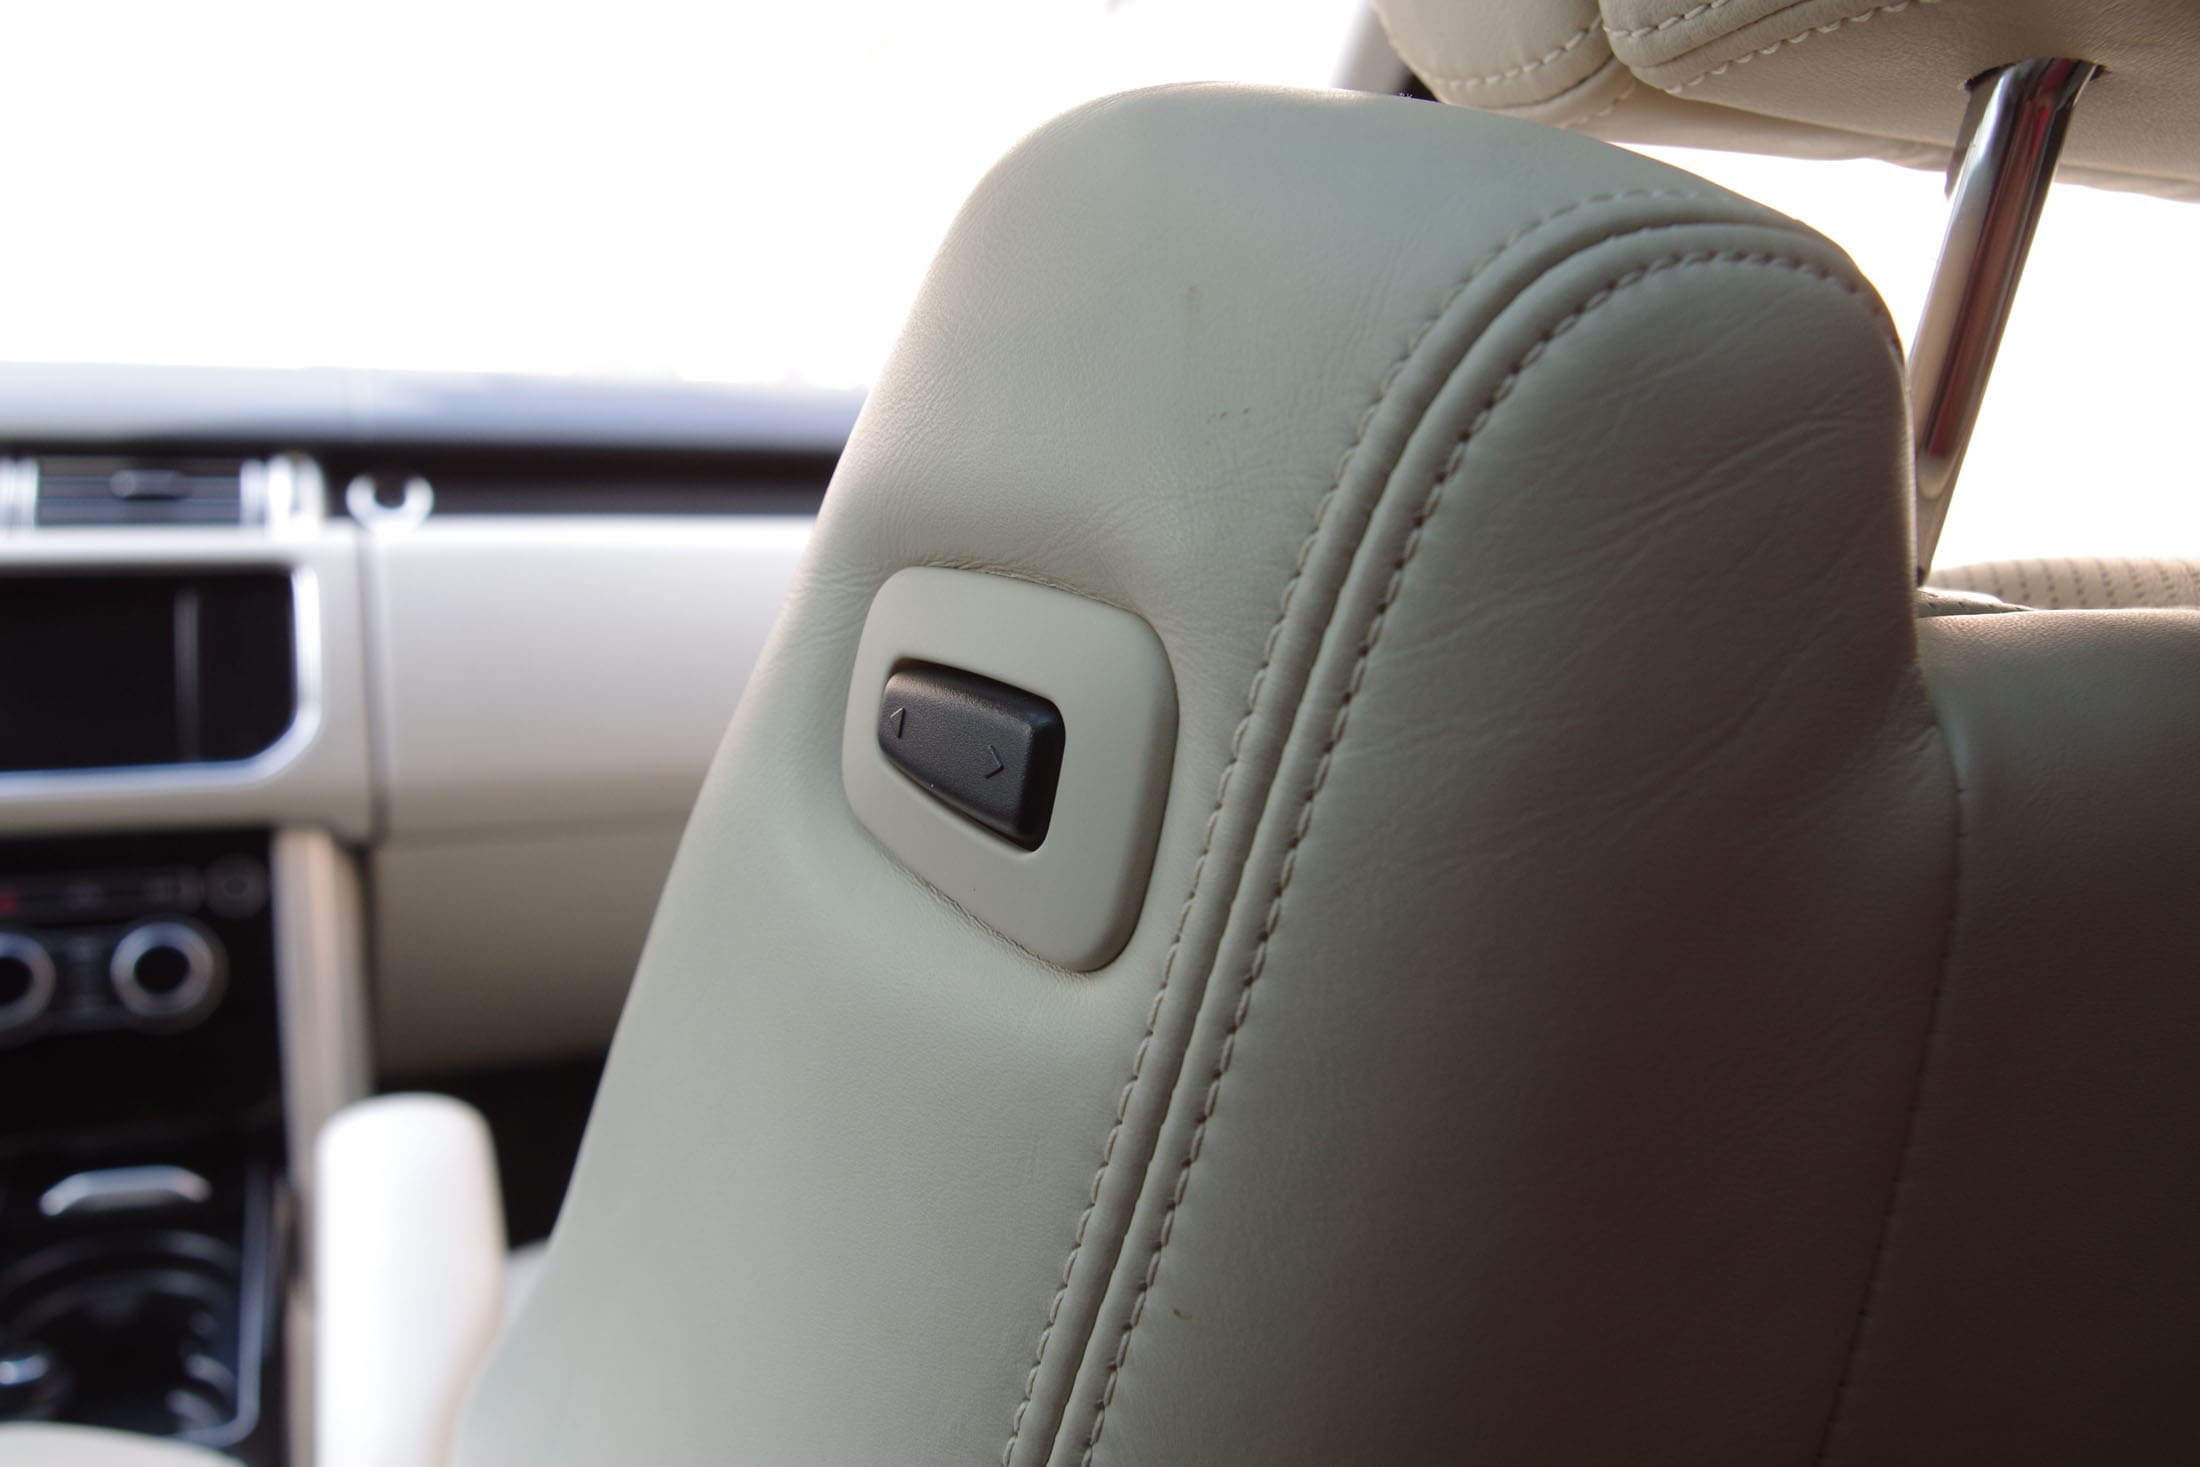 This button lets rear seat passengers move the front passenger seat forward for extra legroom.